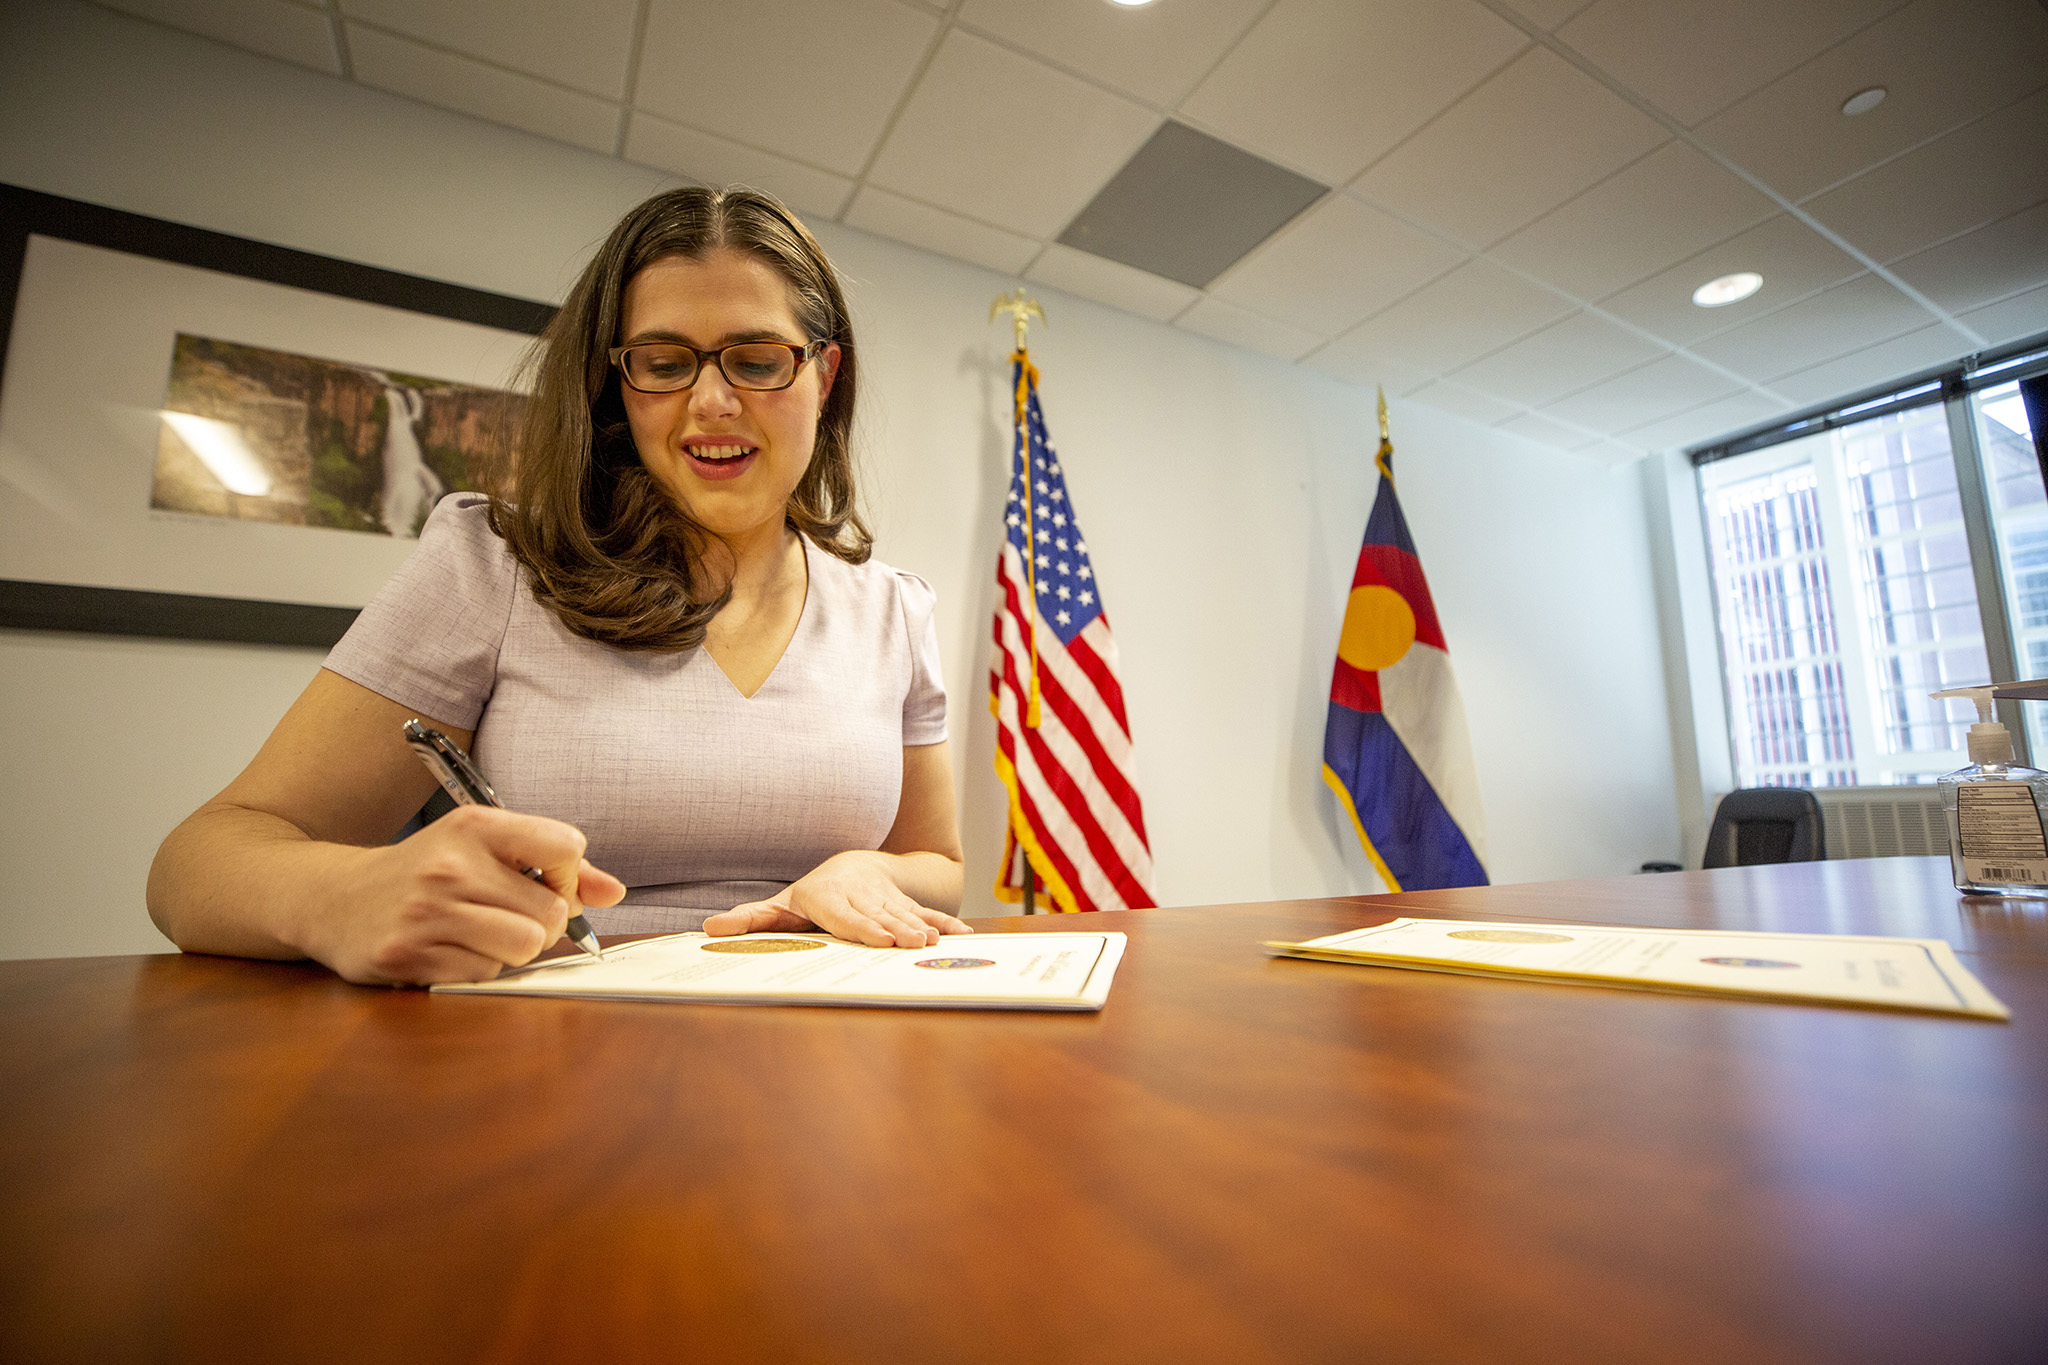 Secretary of State Jena Griswold certifies 2020 Colorado election results in a conference room near her office. Dec. 8, 2020.